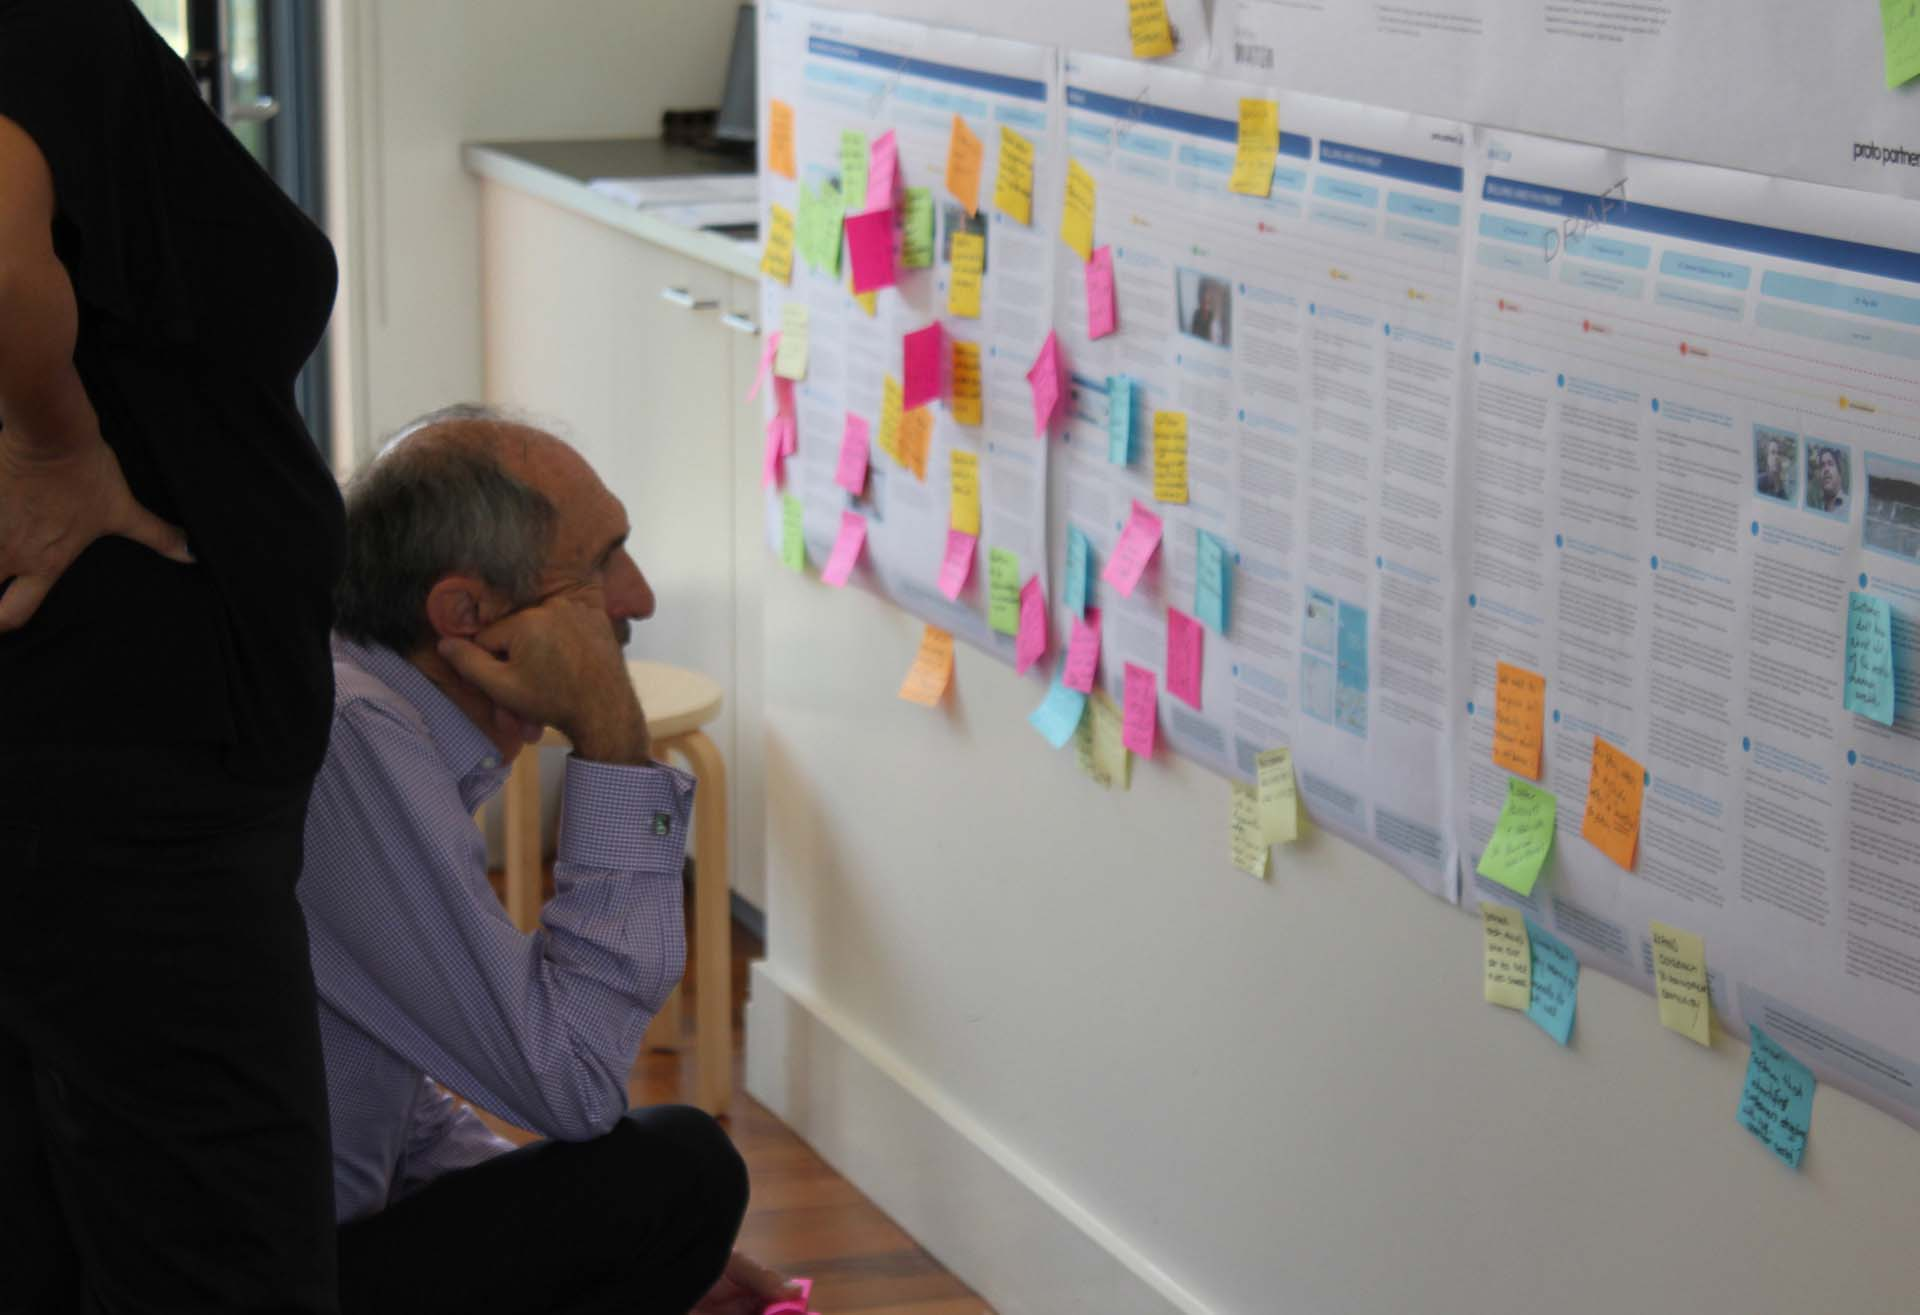 Man crouched reading Customer journey Map